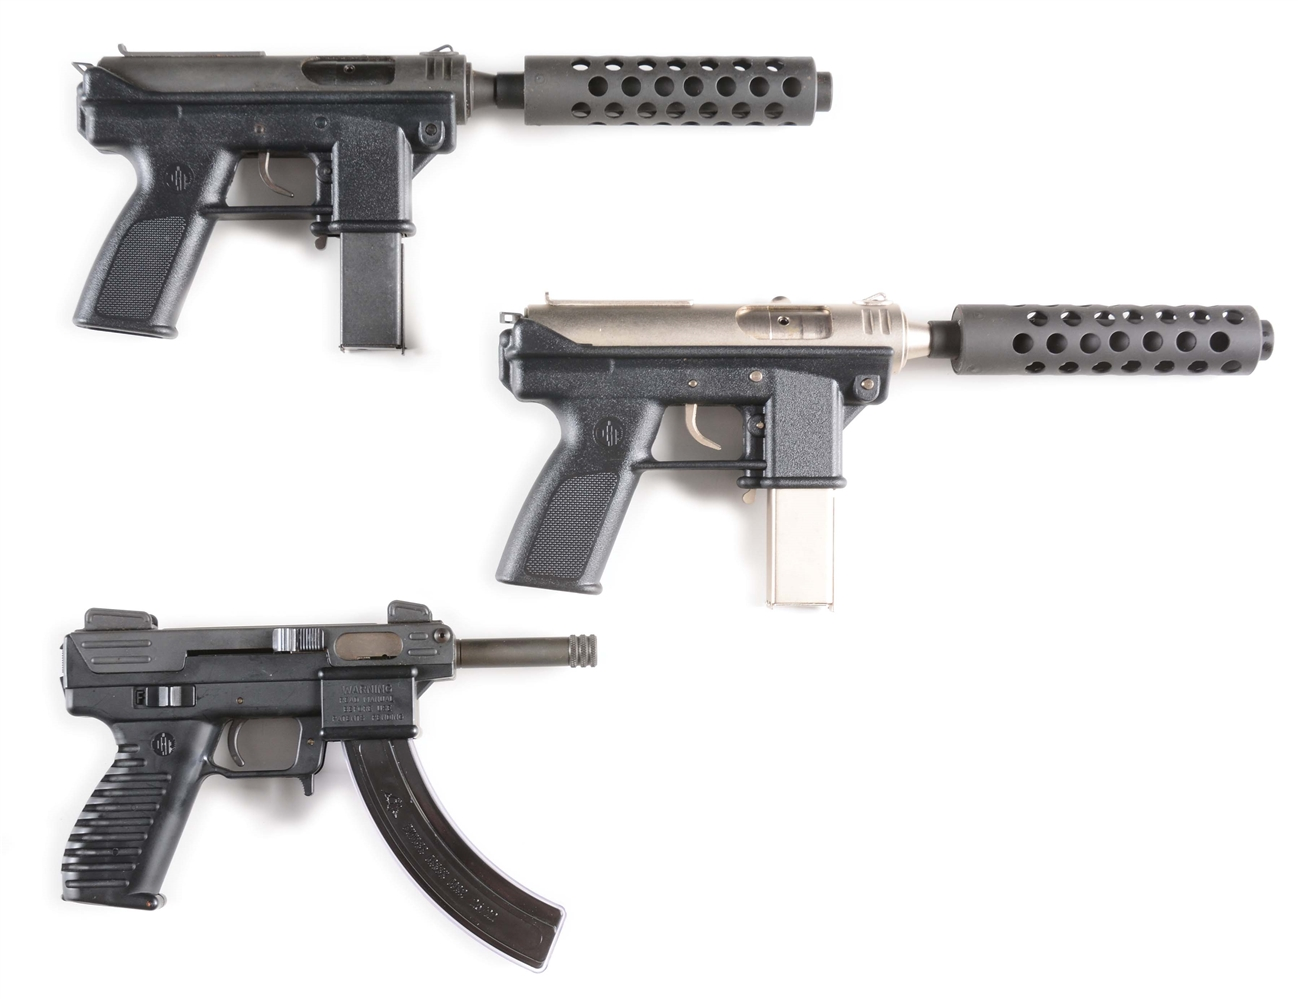 (M) LOT OF THREE: THREE INTRATEC SEMI-AUTOMATIC PISTOLS, TWO DC-9M AND ONE TEC-22.